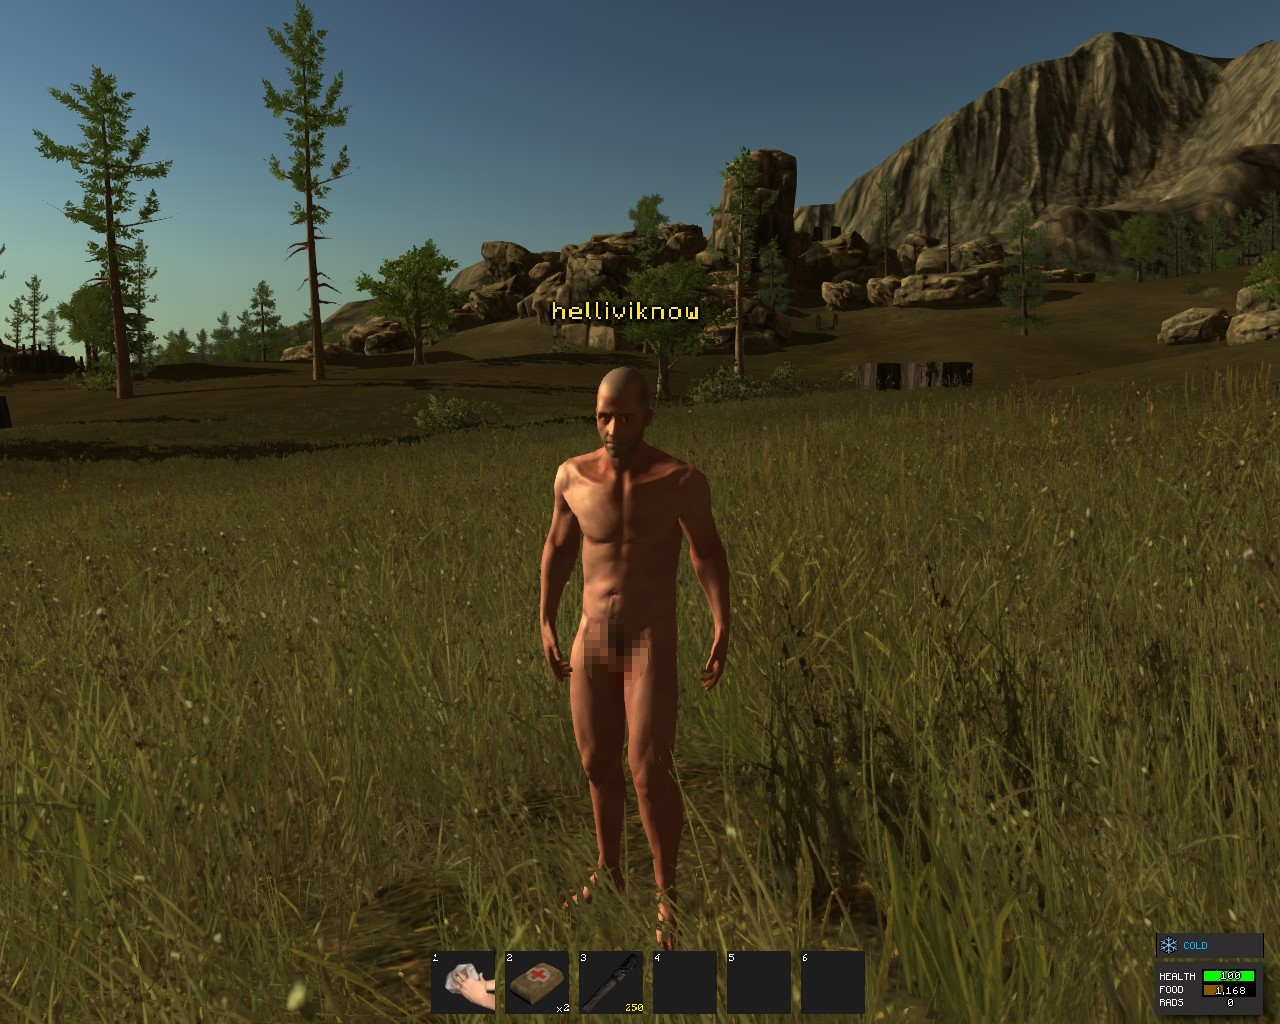 rust nudity